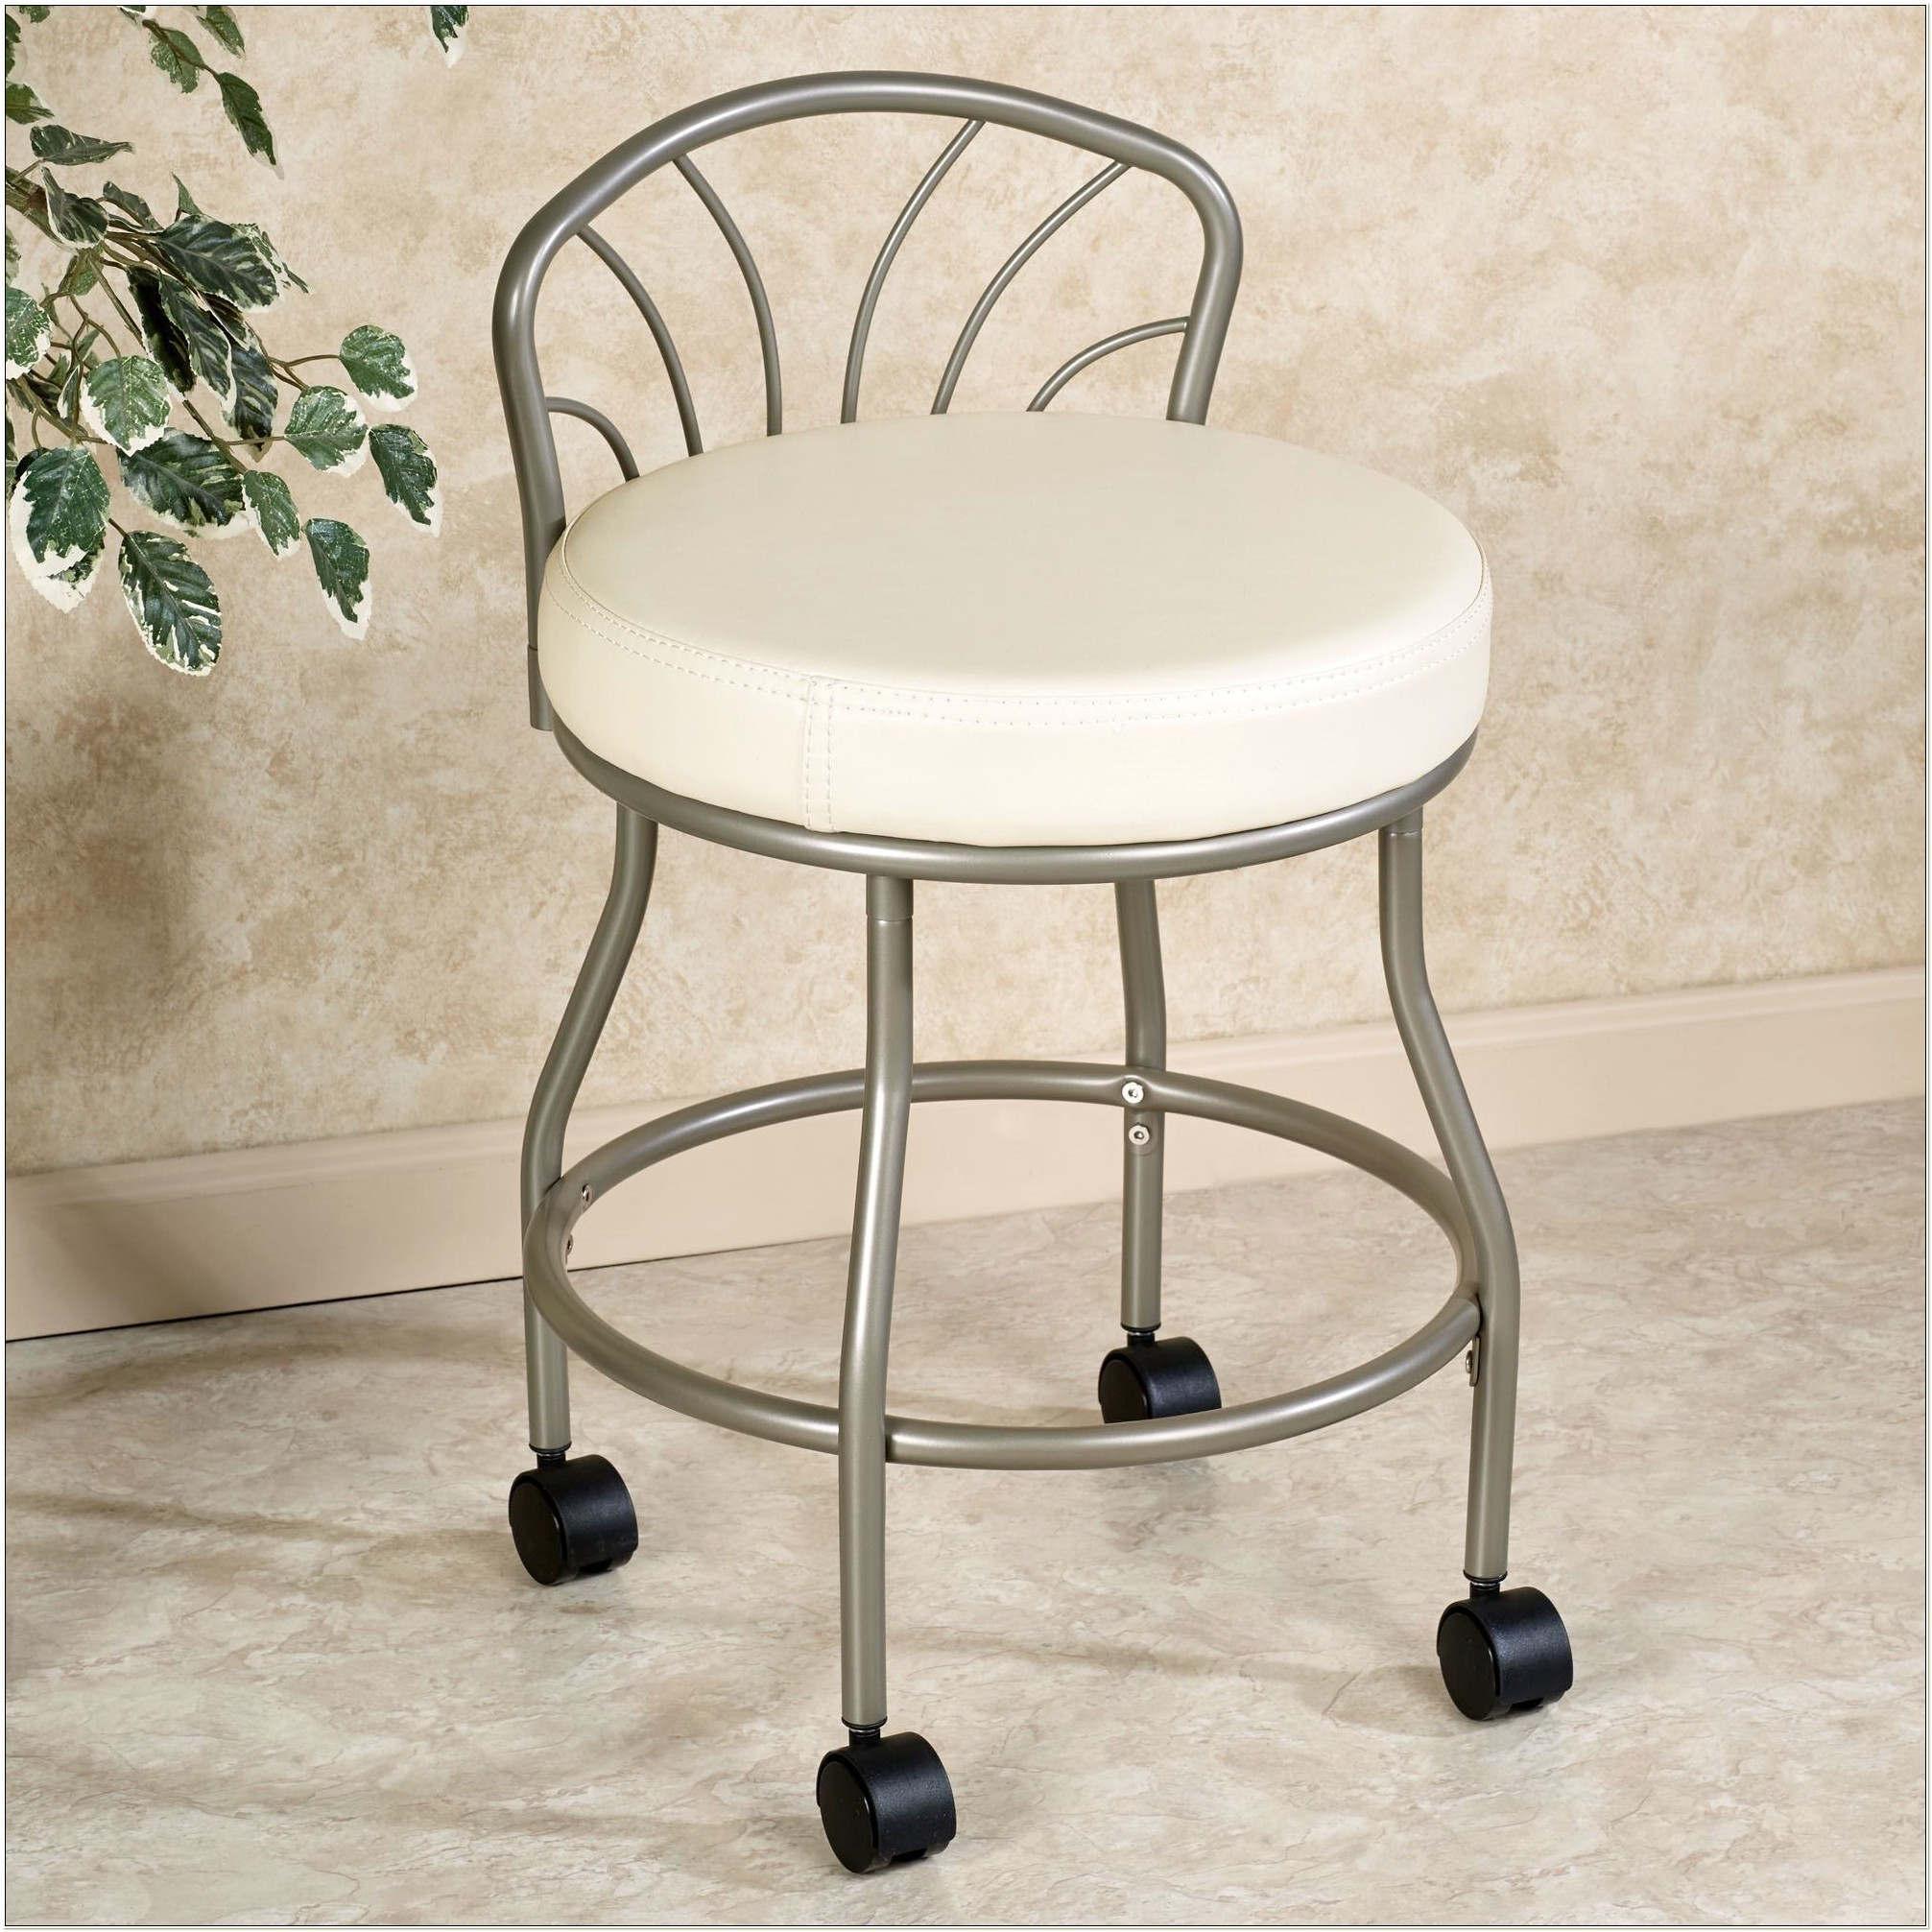 Vanity Chair With Back And Wheels